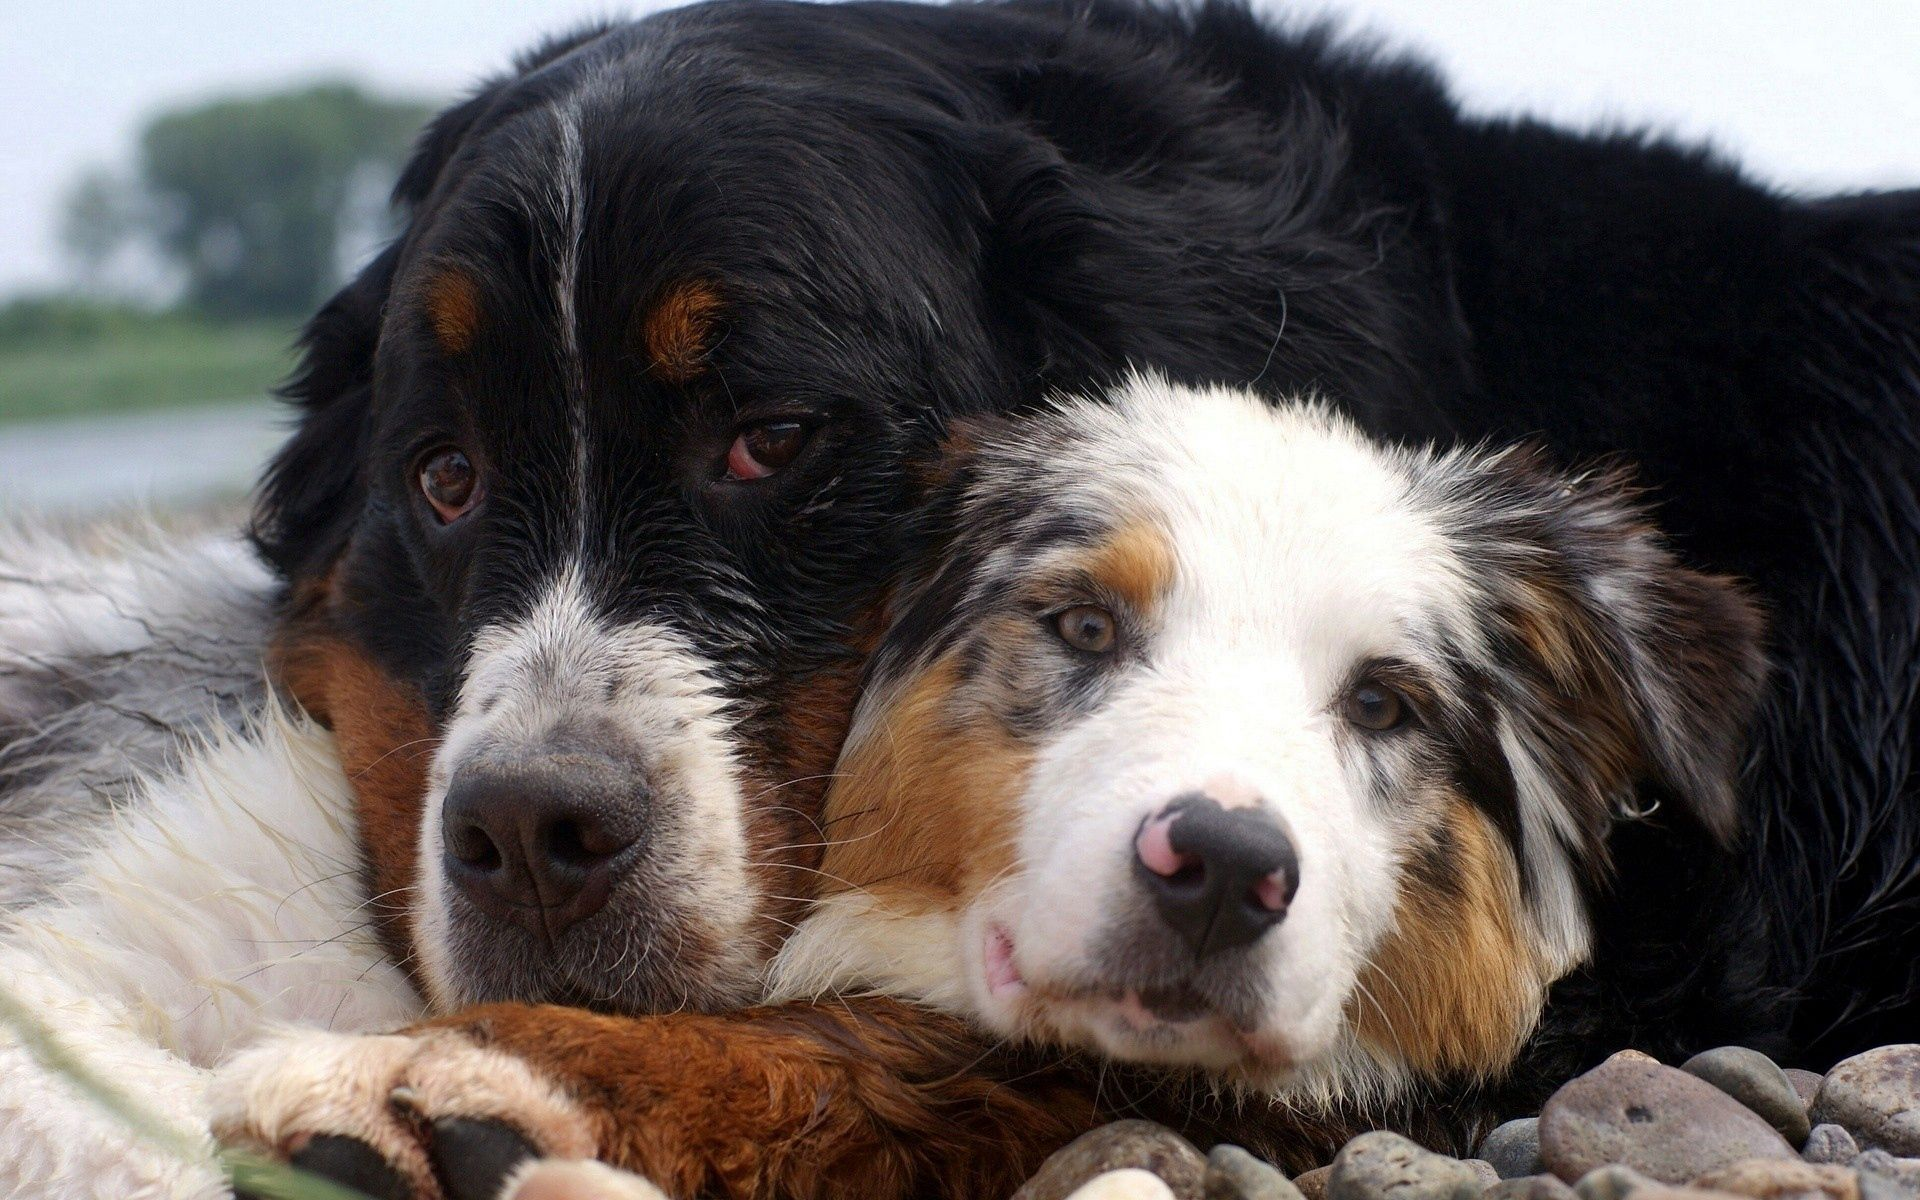 106753 download wallpaper Animals, Dogs, Couple, Pair, Embrace, Australian Shepherd screensavers and pictures for free